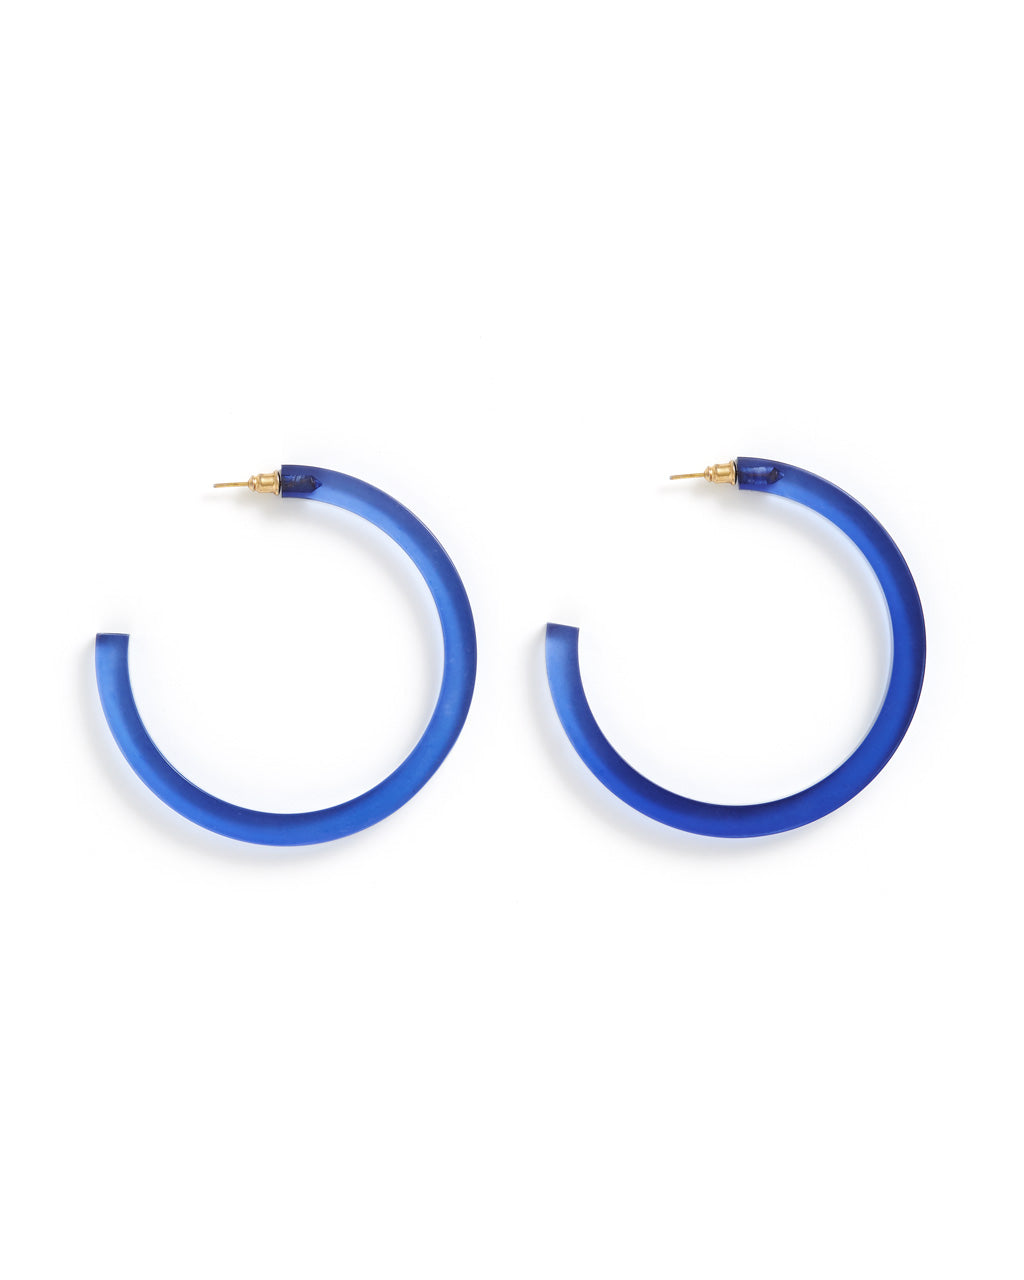 Lapis Lucite Hoop Earrings